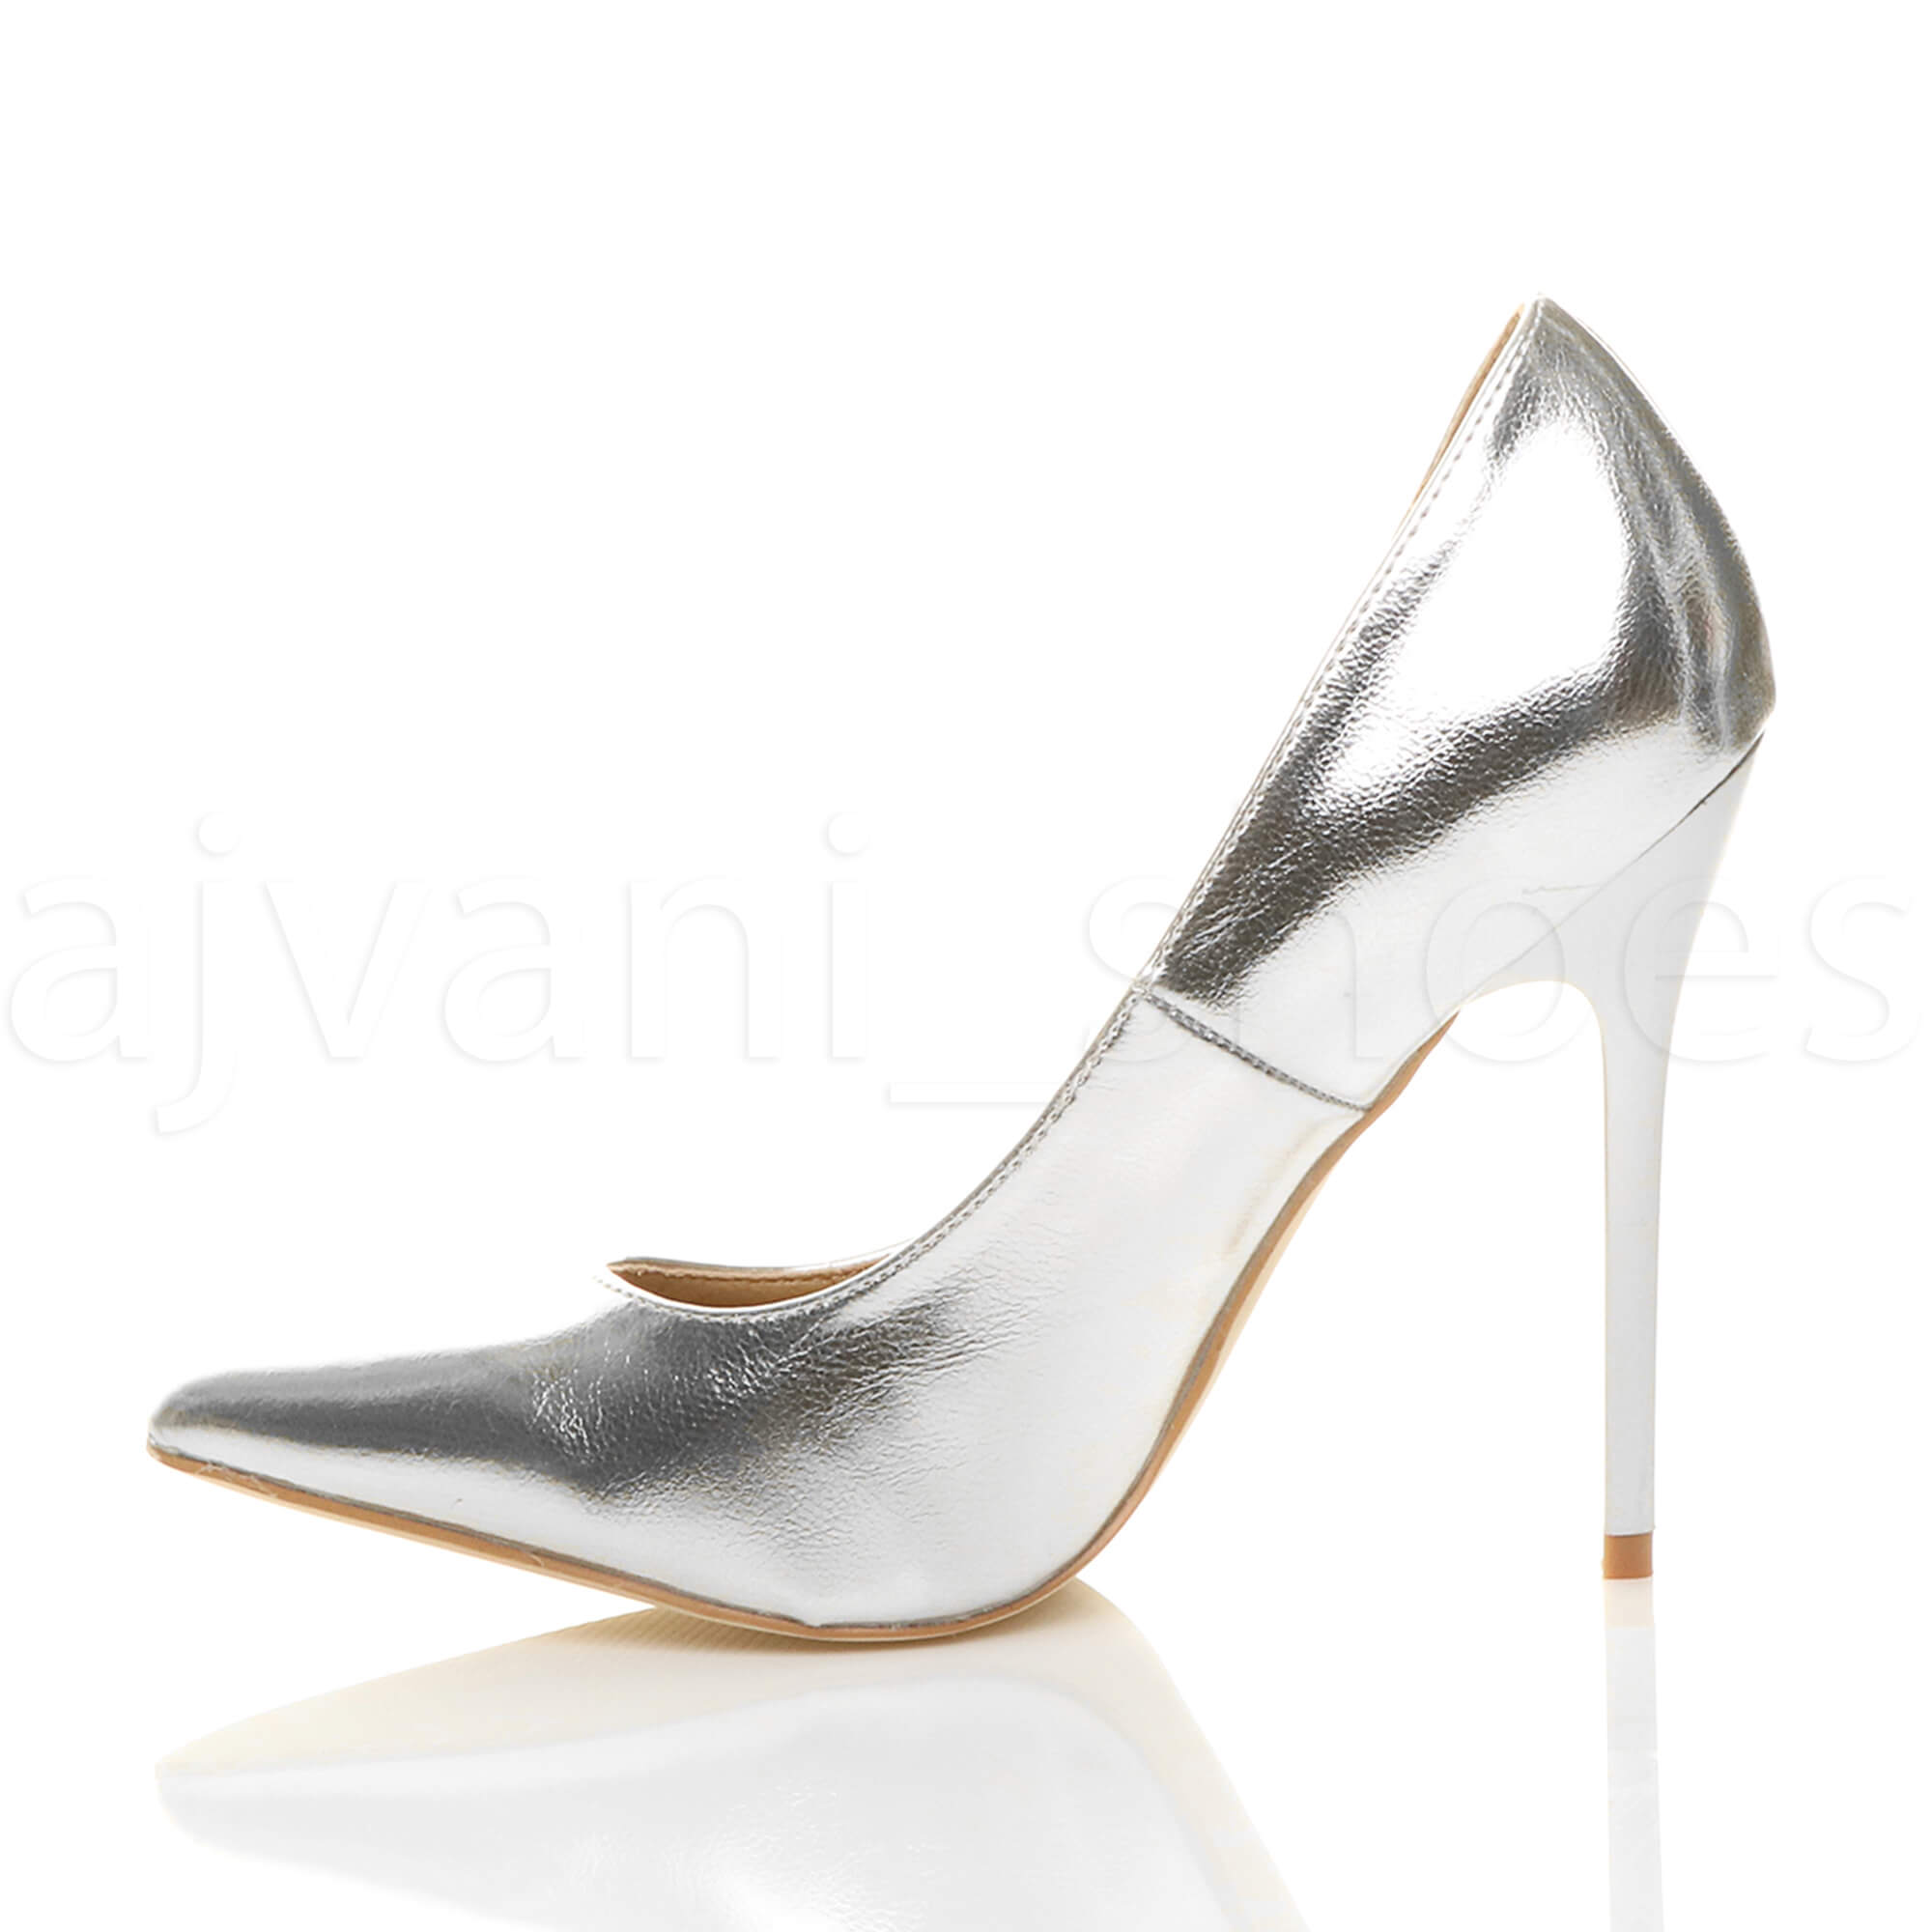 WOMENS-LADIES-HIGH-HEEL-POINTED-CONTRAST-COURT-SMART-PARTY-WORK-SHOES-PUMPS-SIZE thumbnail 194